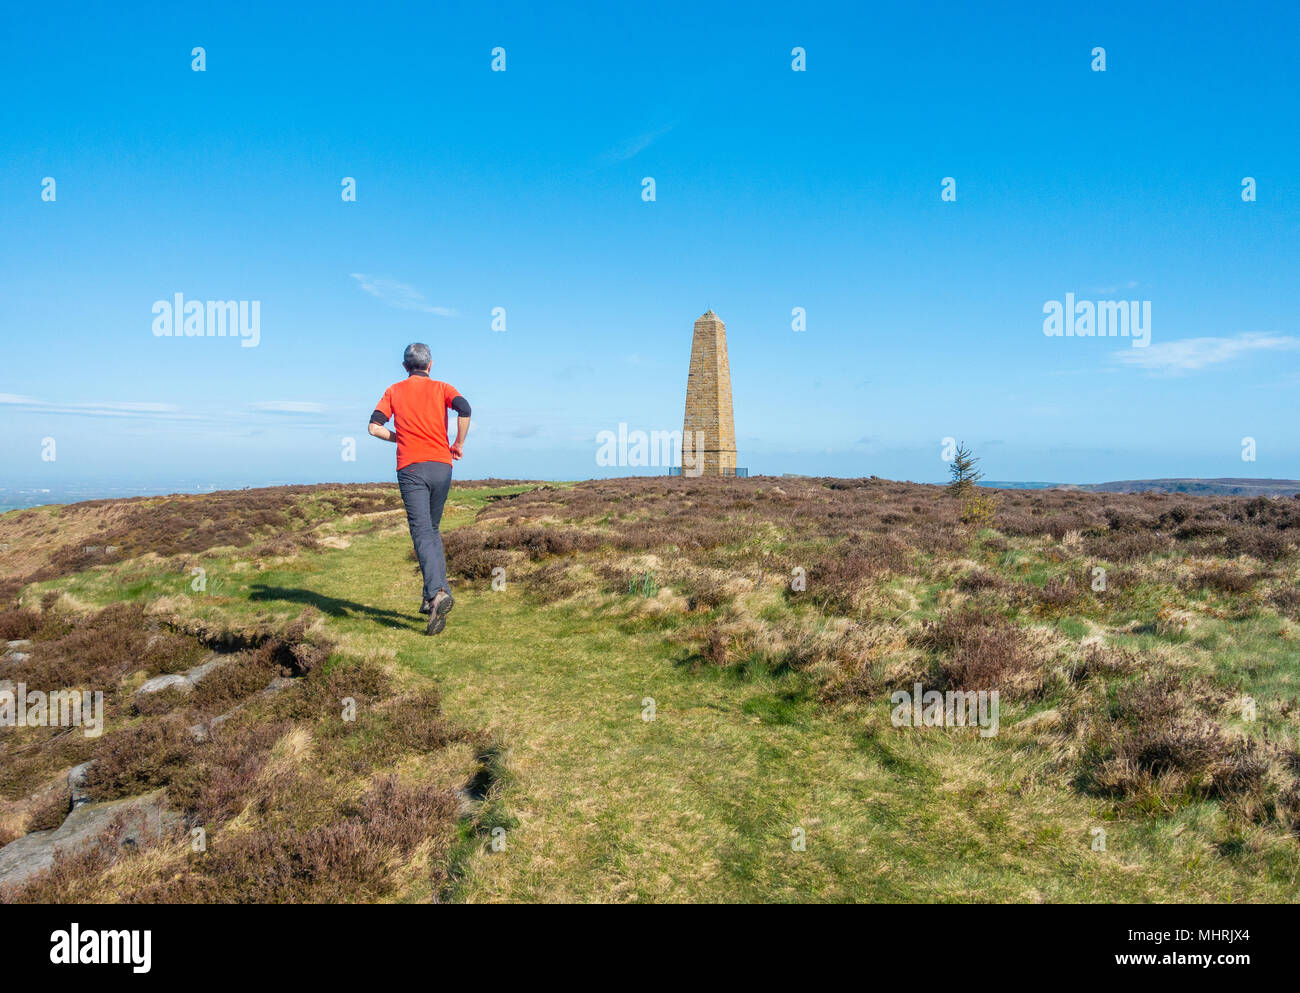 Easby Moor, North York Moors National Park North Yorkshire, England, UK. 3rd May, 2018. Weather: Glorious sunshine in North Yorkshire. A walker near Captain Cook`s monument on Easby Moor, which overlooks the boyhood village of James Cook, Great Ayton. 2018 marks the 250th anniversary of Captain Cook`s first Pacific voyage, with events planned nationwide to commemorate the event. Credit: ALAN DAWSON/Alamy Live News - Stock Image